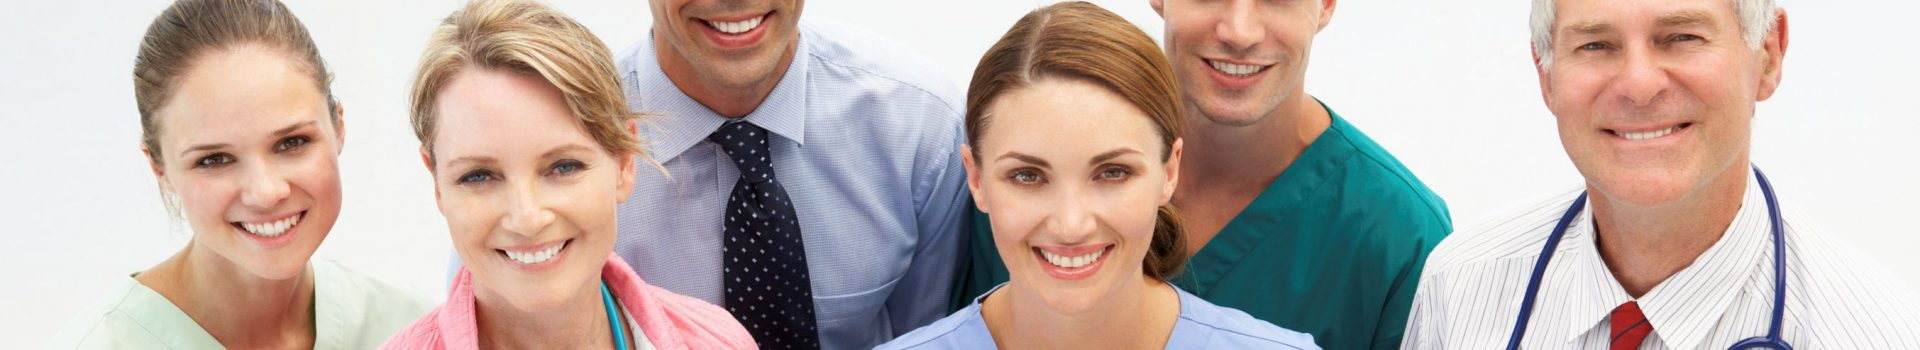 health care professionals for web header